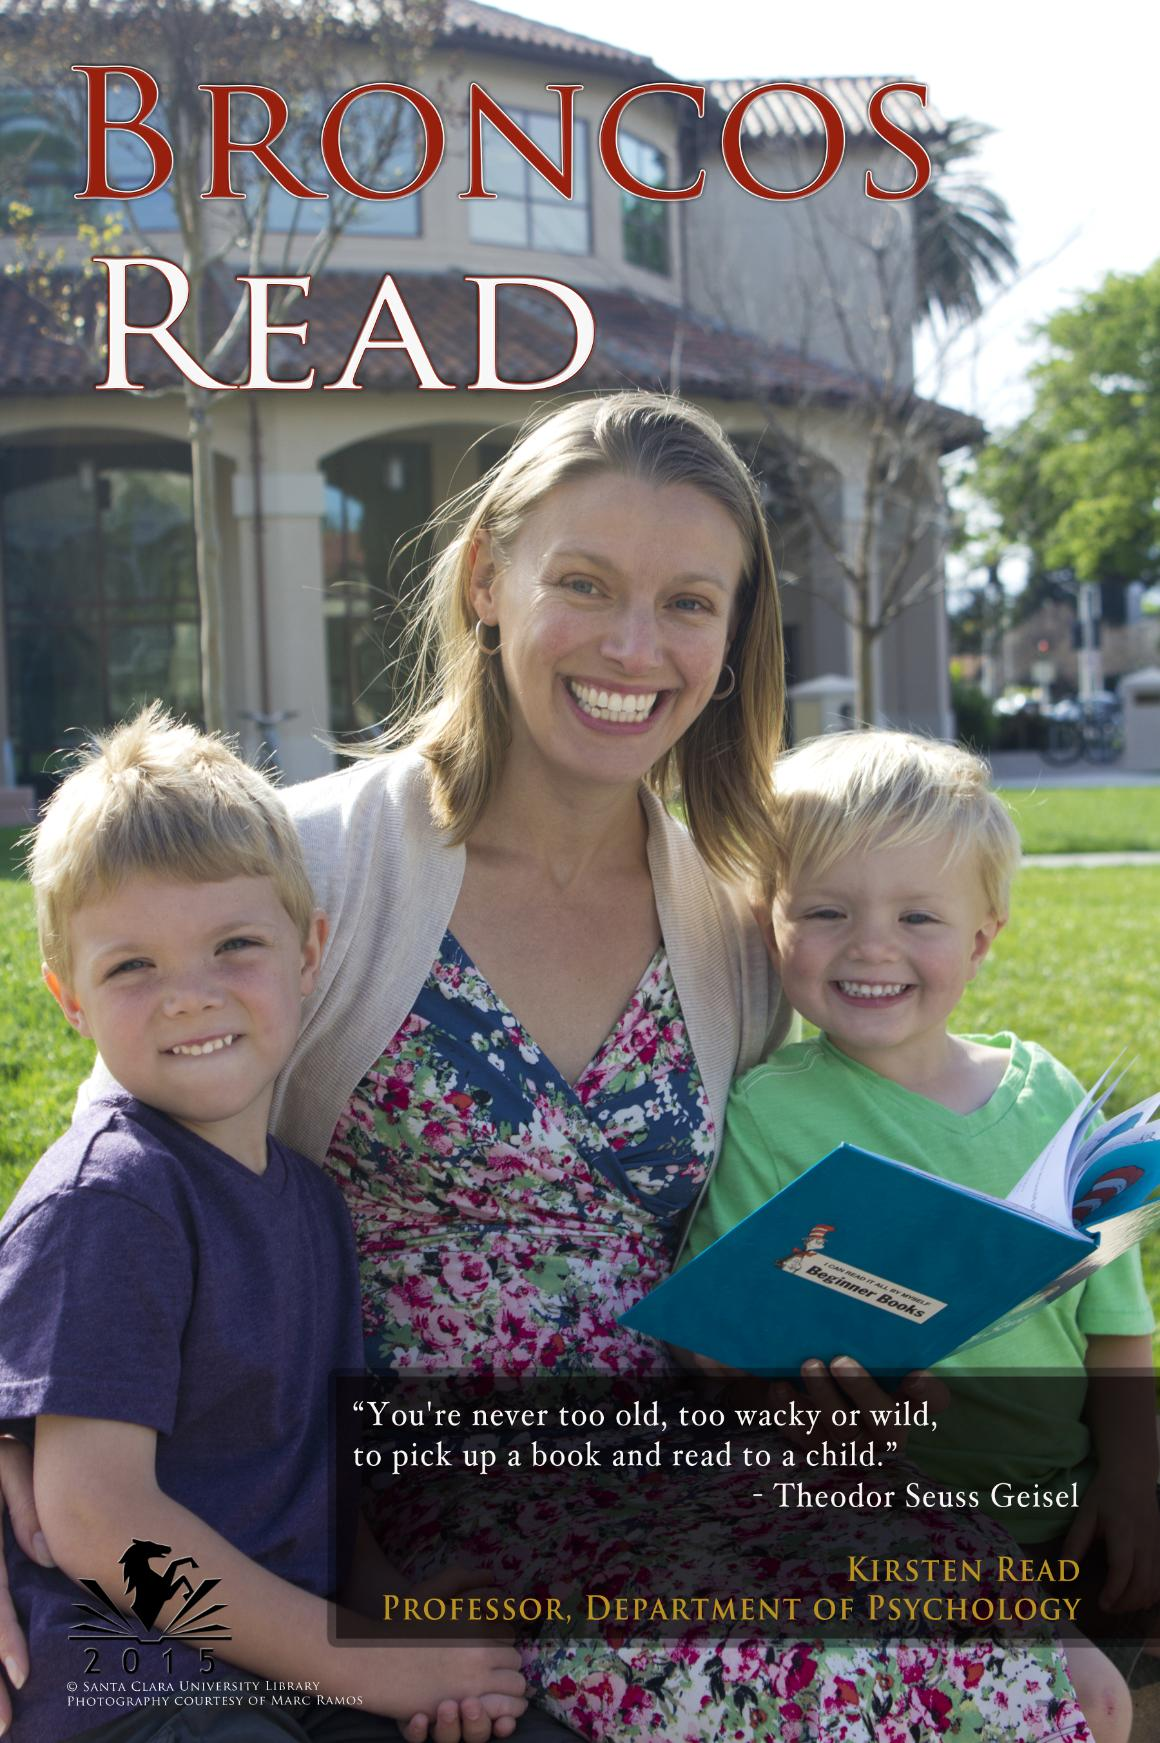 2015 Broncos Read Faculty Honoree - Dr. Kirsten Read